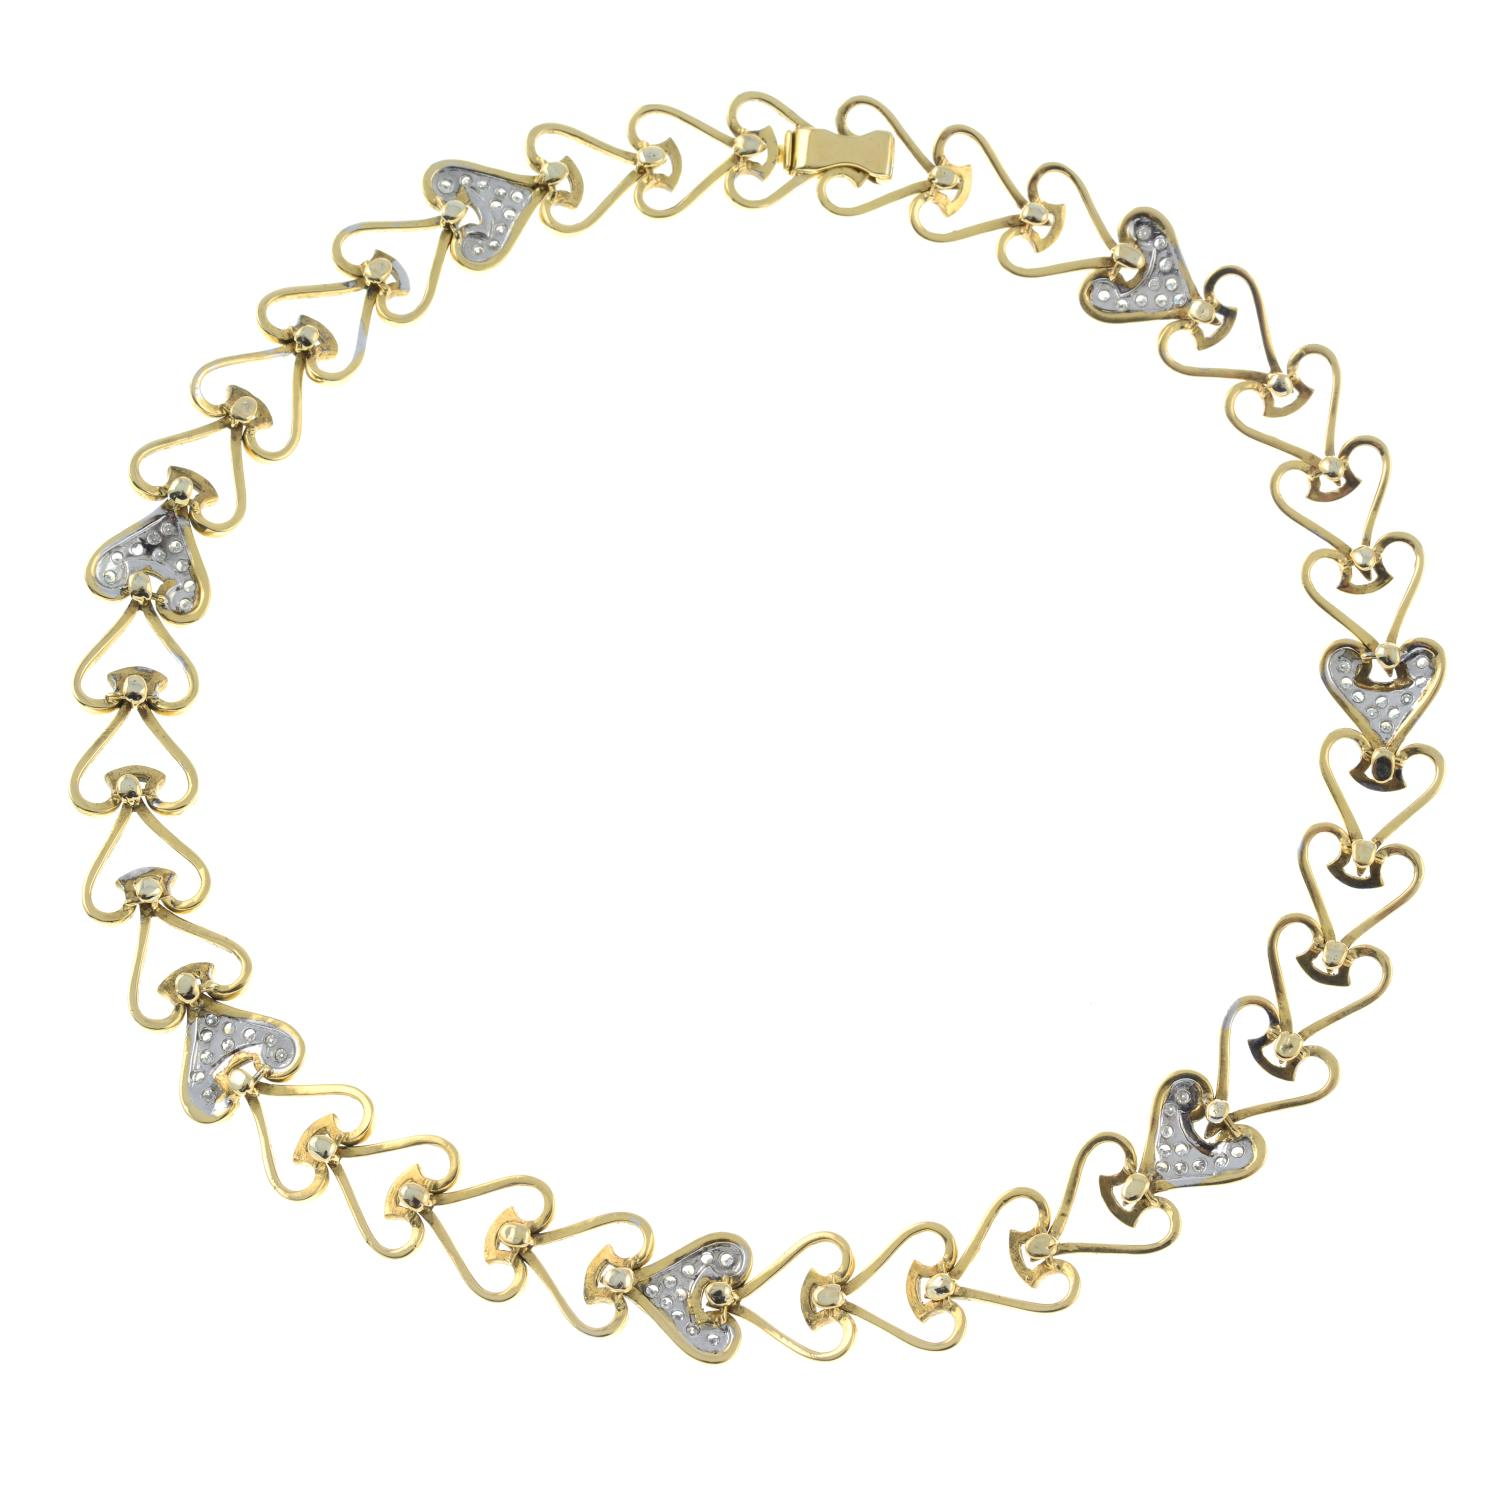 A heart motif necklace, with pavé-set diamond highlights. - Image 5 of 5